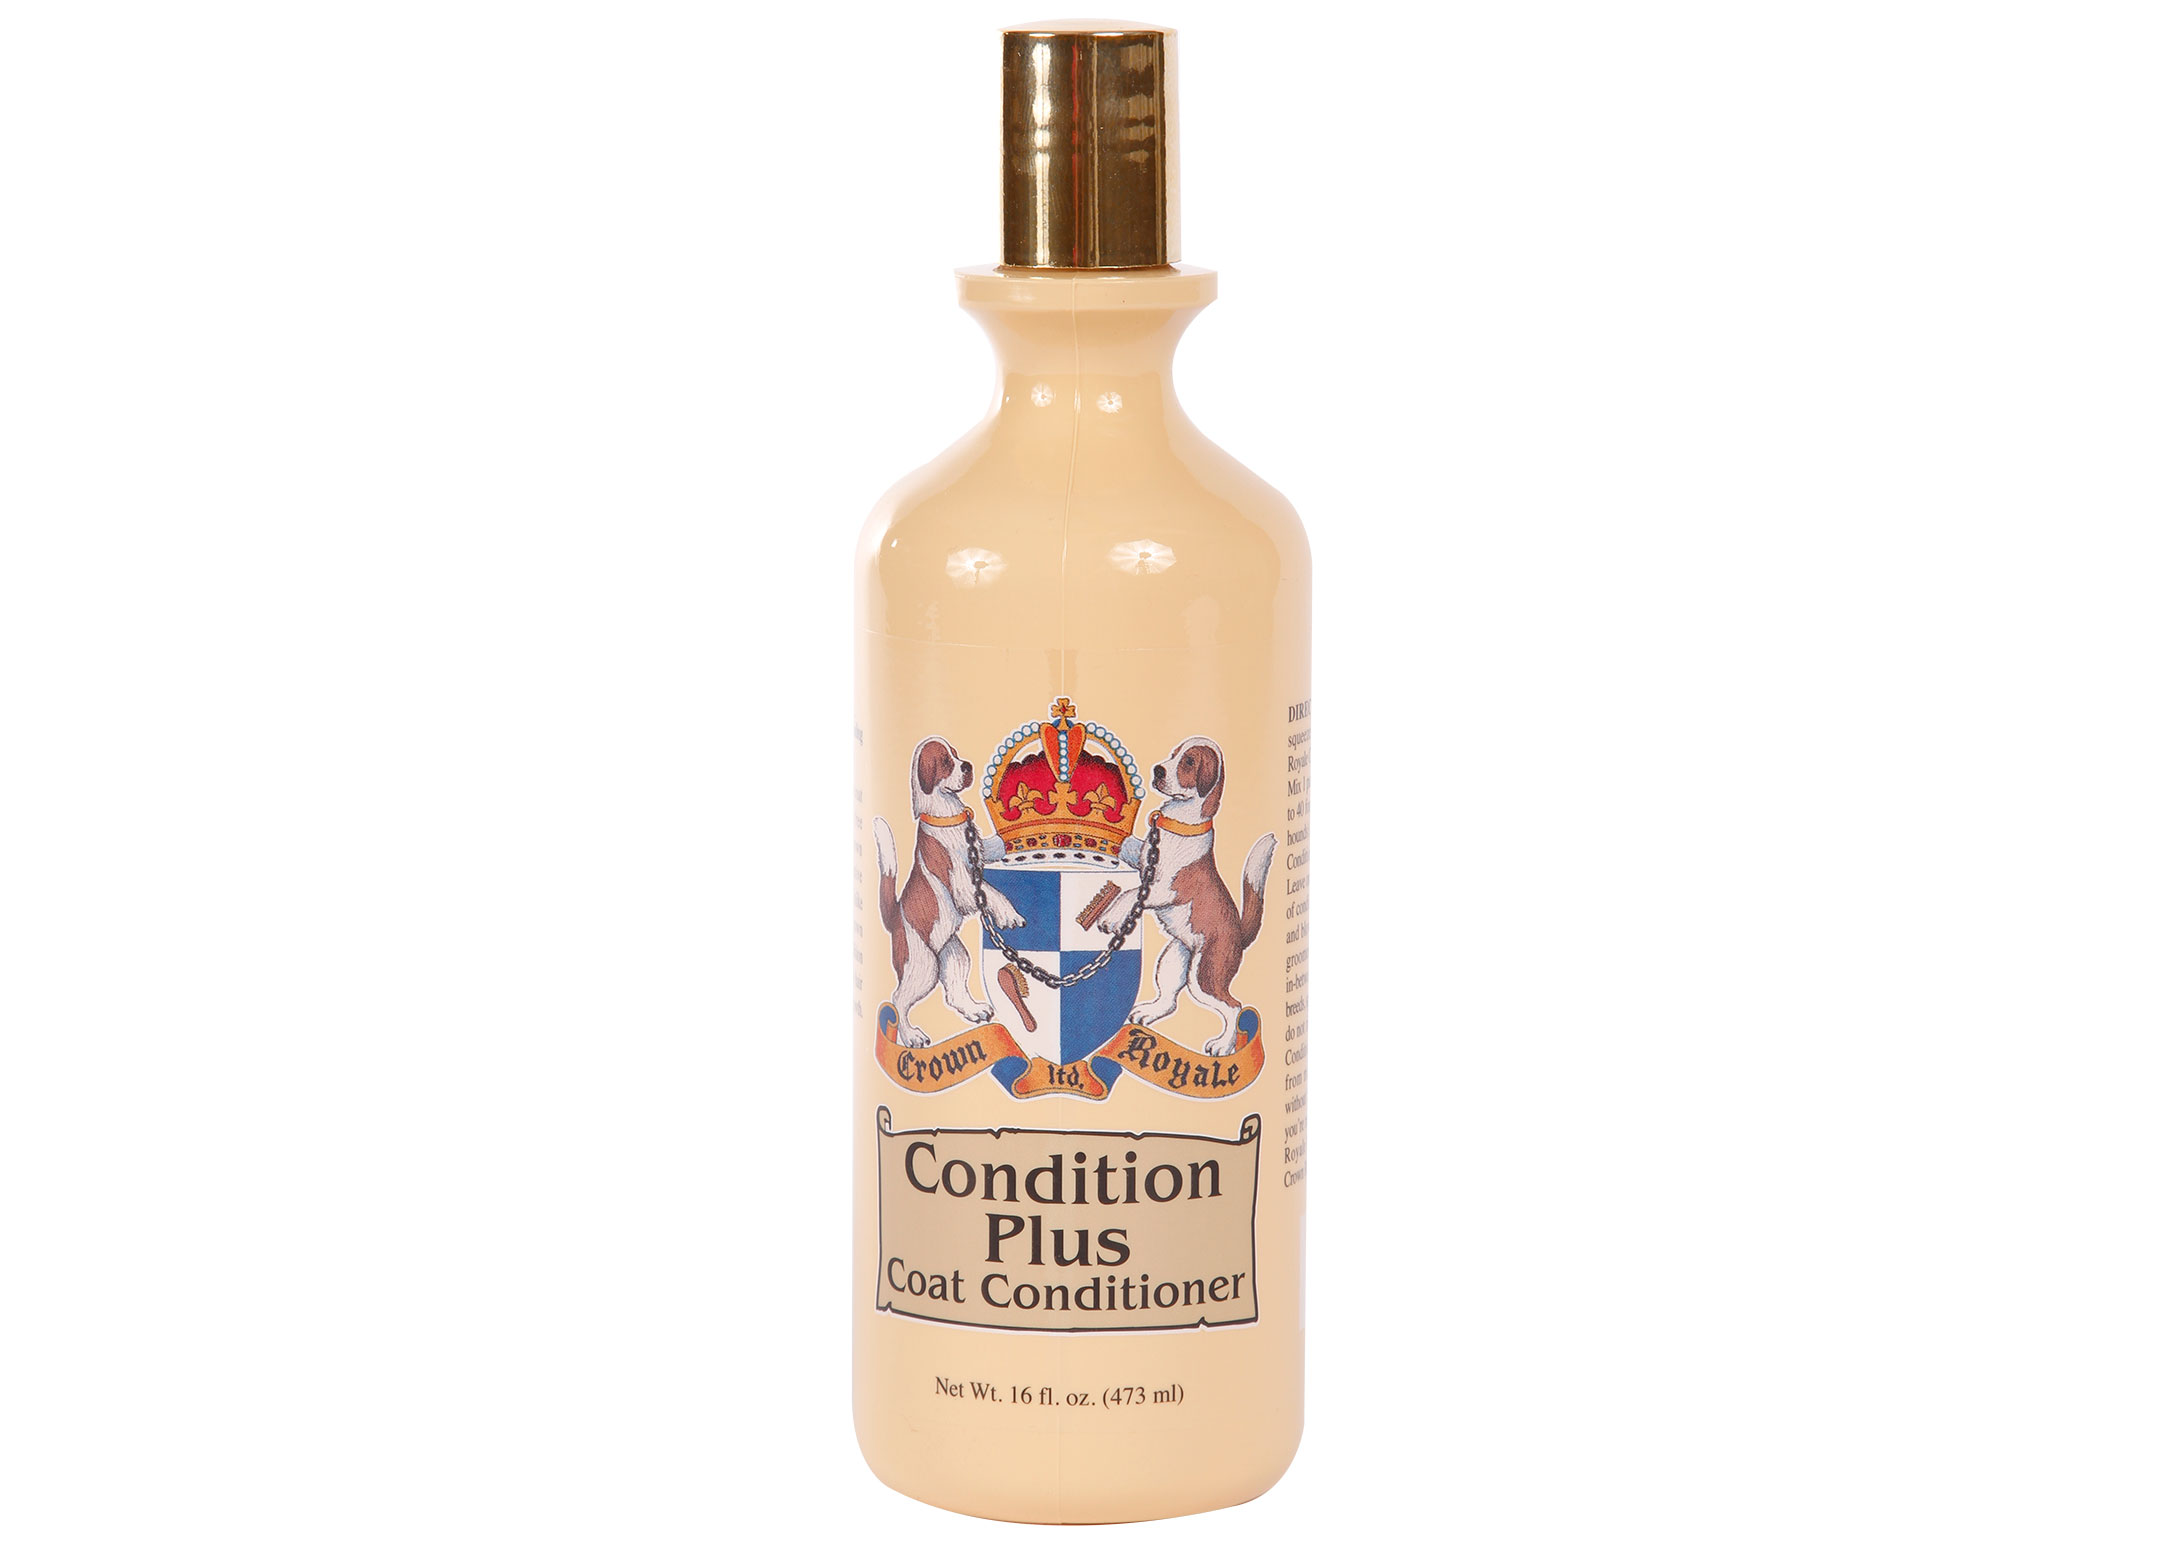 Crown Royale Conditioner Plus Conditioner Voor Honden, Katten En Paarden